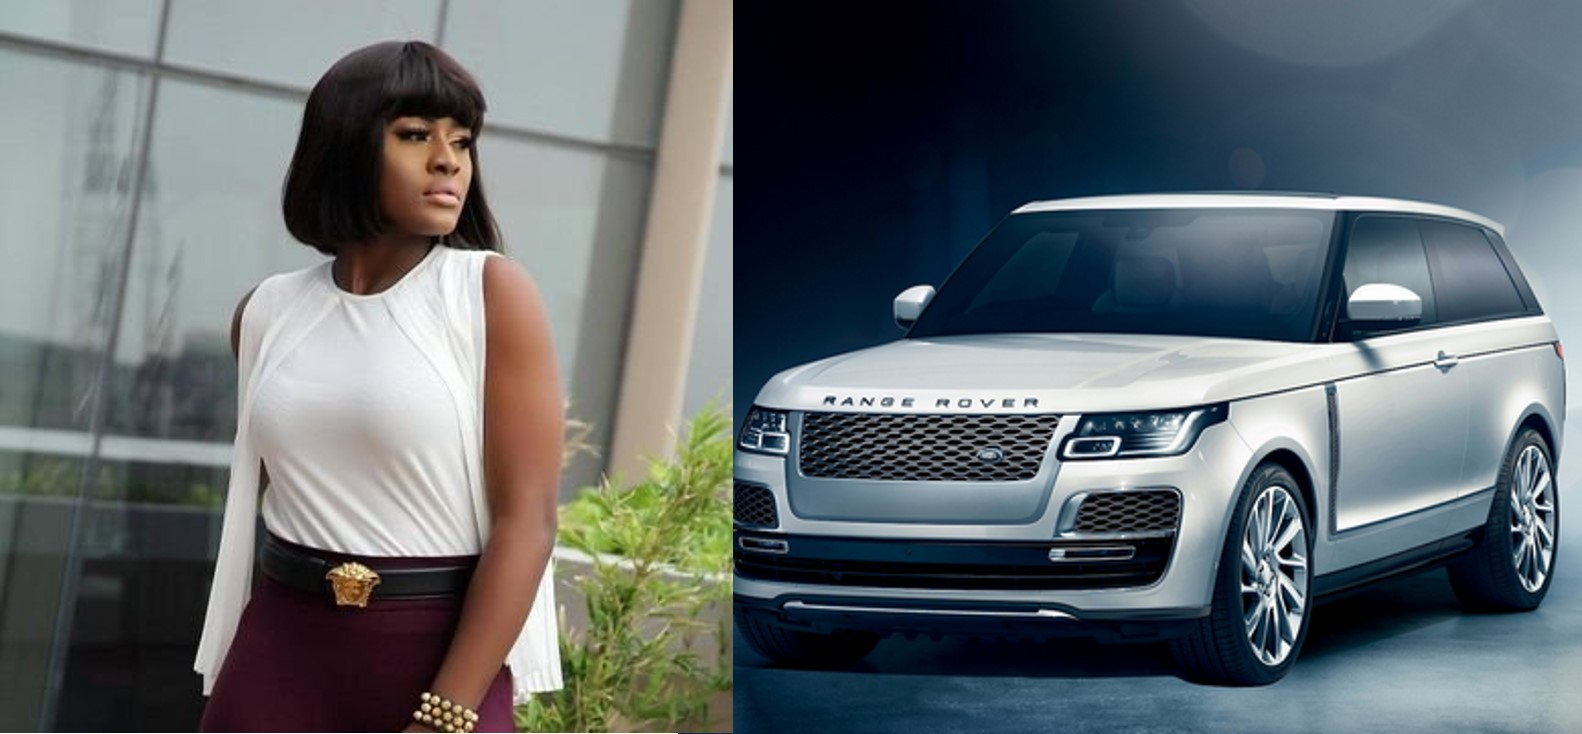 Alex Unusual finally reveals why she rejected 2018 Range Rover birthday gift